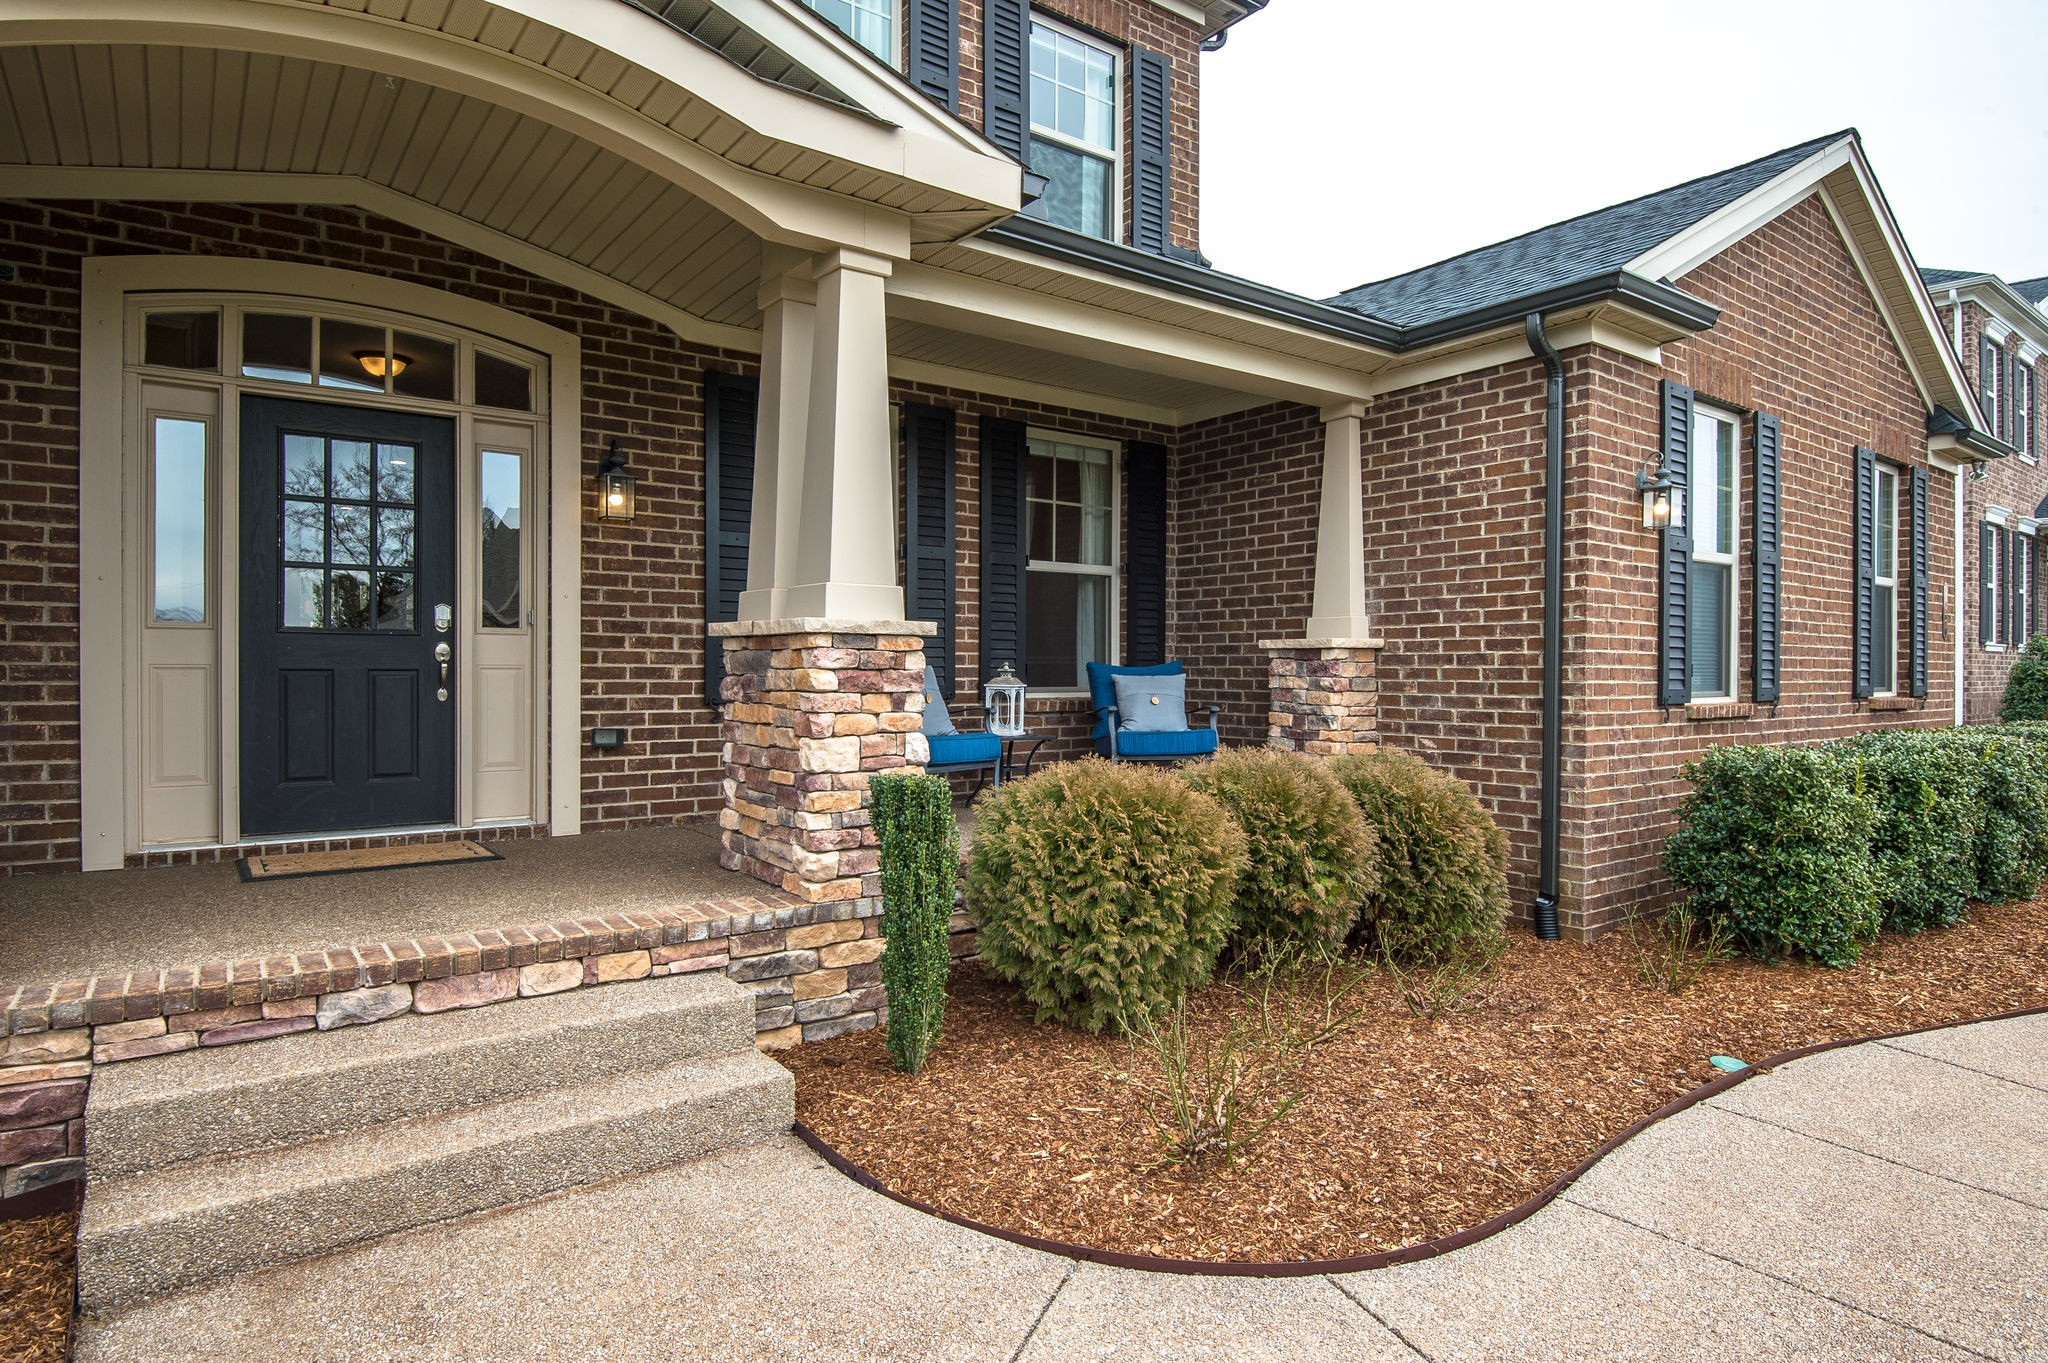 Only 4 years old in one of Nolensville's favorite neighborhoods in Williamson Co w/award-winning schools, this home has tons of space! 5 bedrooms (w/master & guest suites on main), 4 FULL baths, hardwoods, sunroom, kitchen w/granite, island + eat-in area, walk-in pantry & formal dining  bonus room + media room, 3 car garage, playset on lot that backs up to wooded area w/ trails & playground! 3 community pools! Virtual tour http://tour.showcasephotographers.com/index.php?sbo=rs2003093